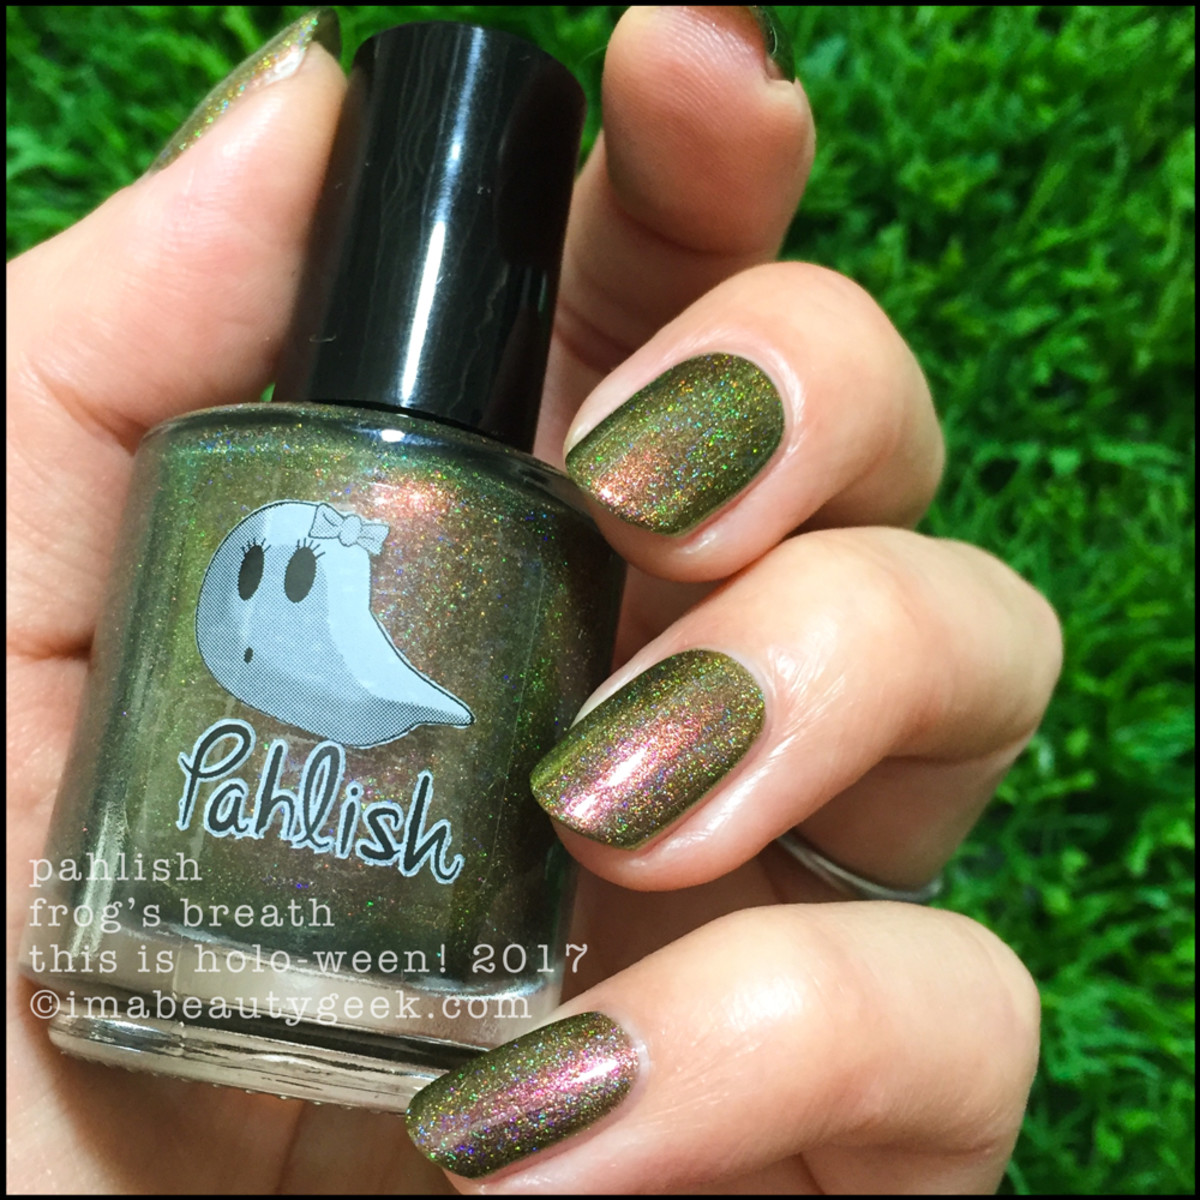 Pahlish Frog's Breath 3 - This is Holoween! 2017